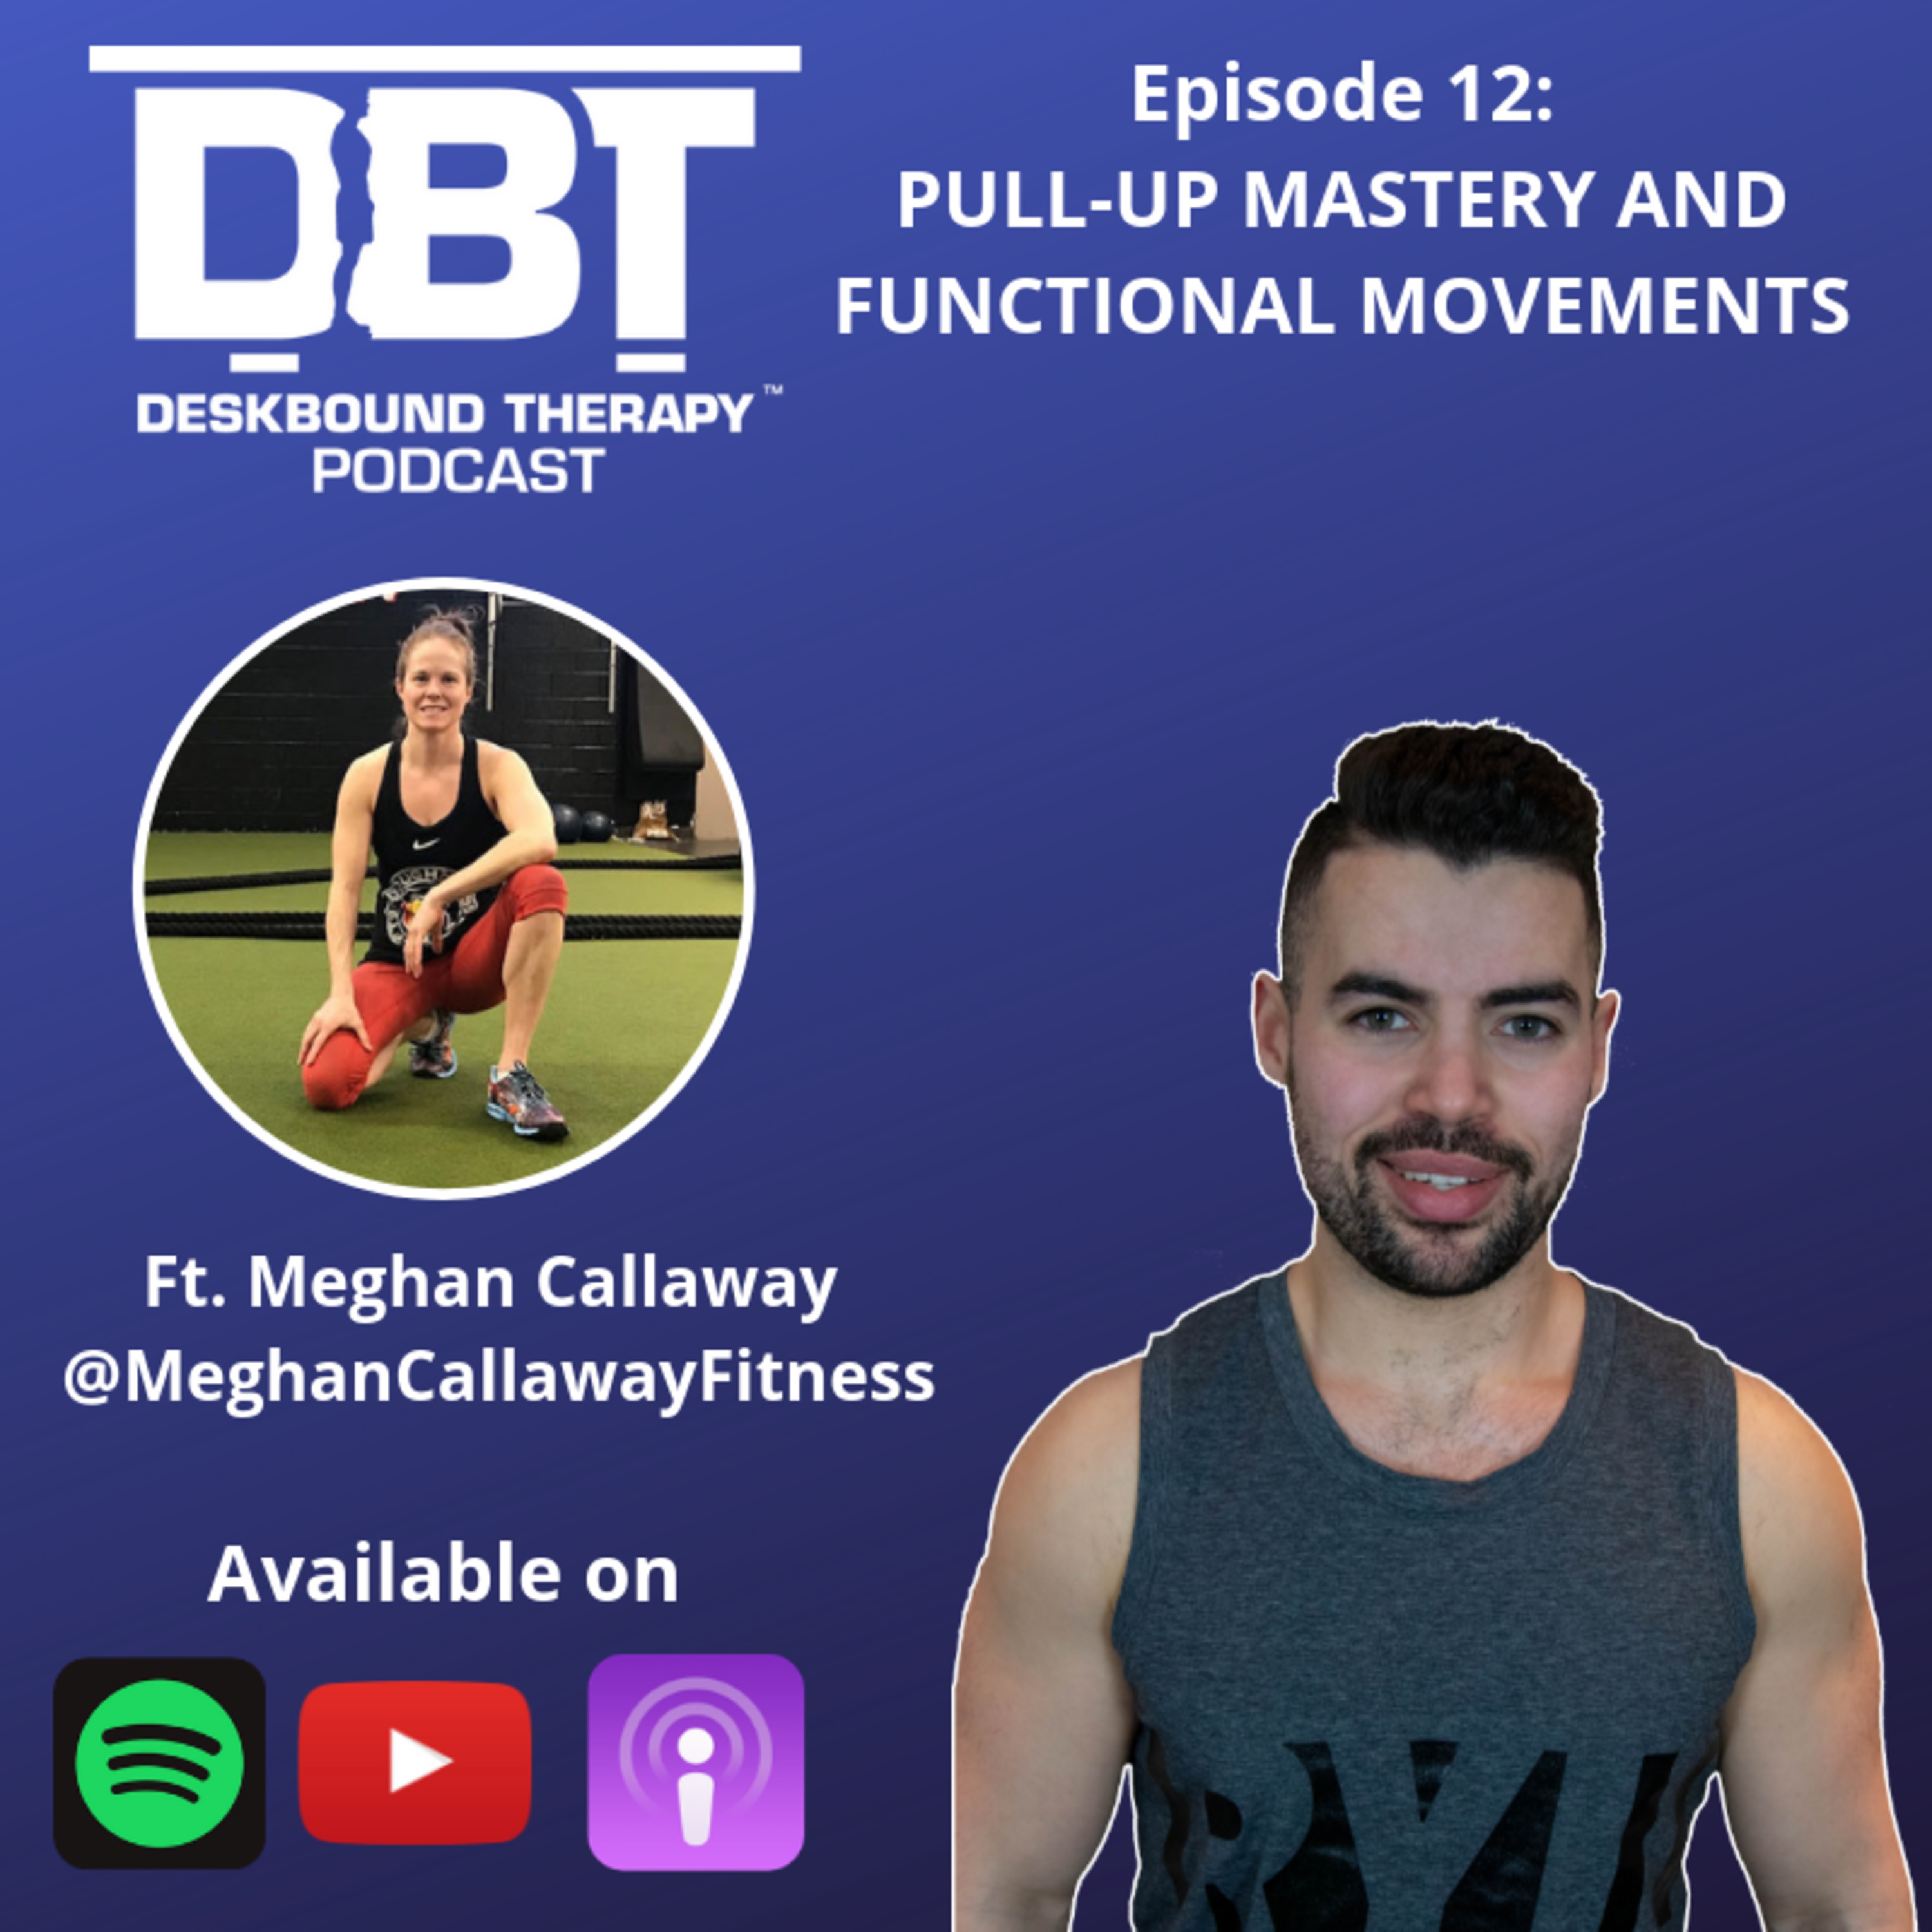 Episode 12: Pull-Up Mastery and Functional Movements Ft. Meghan Callaway